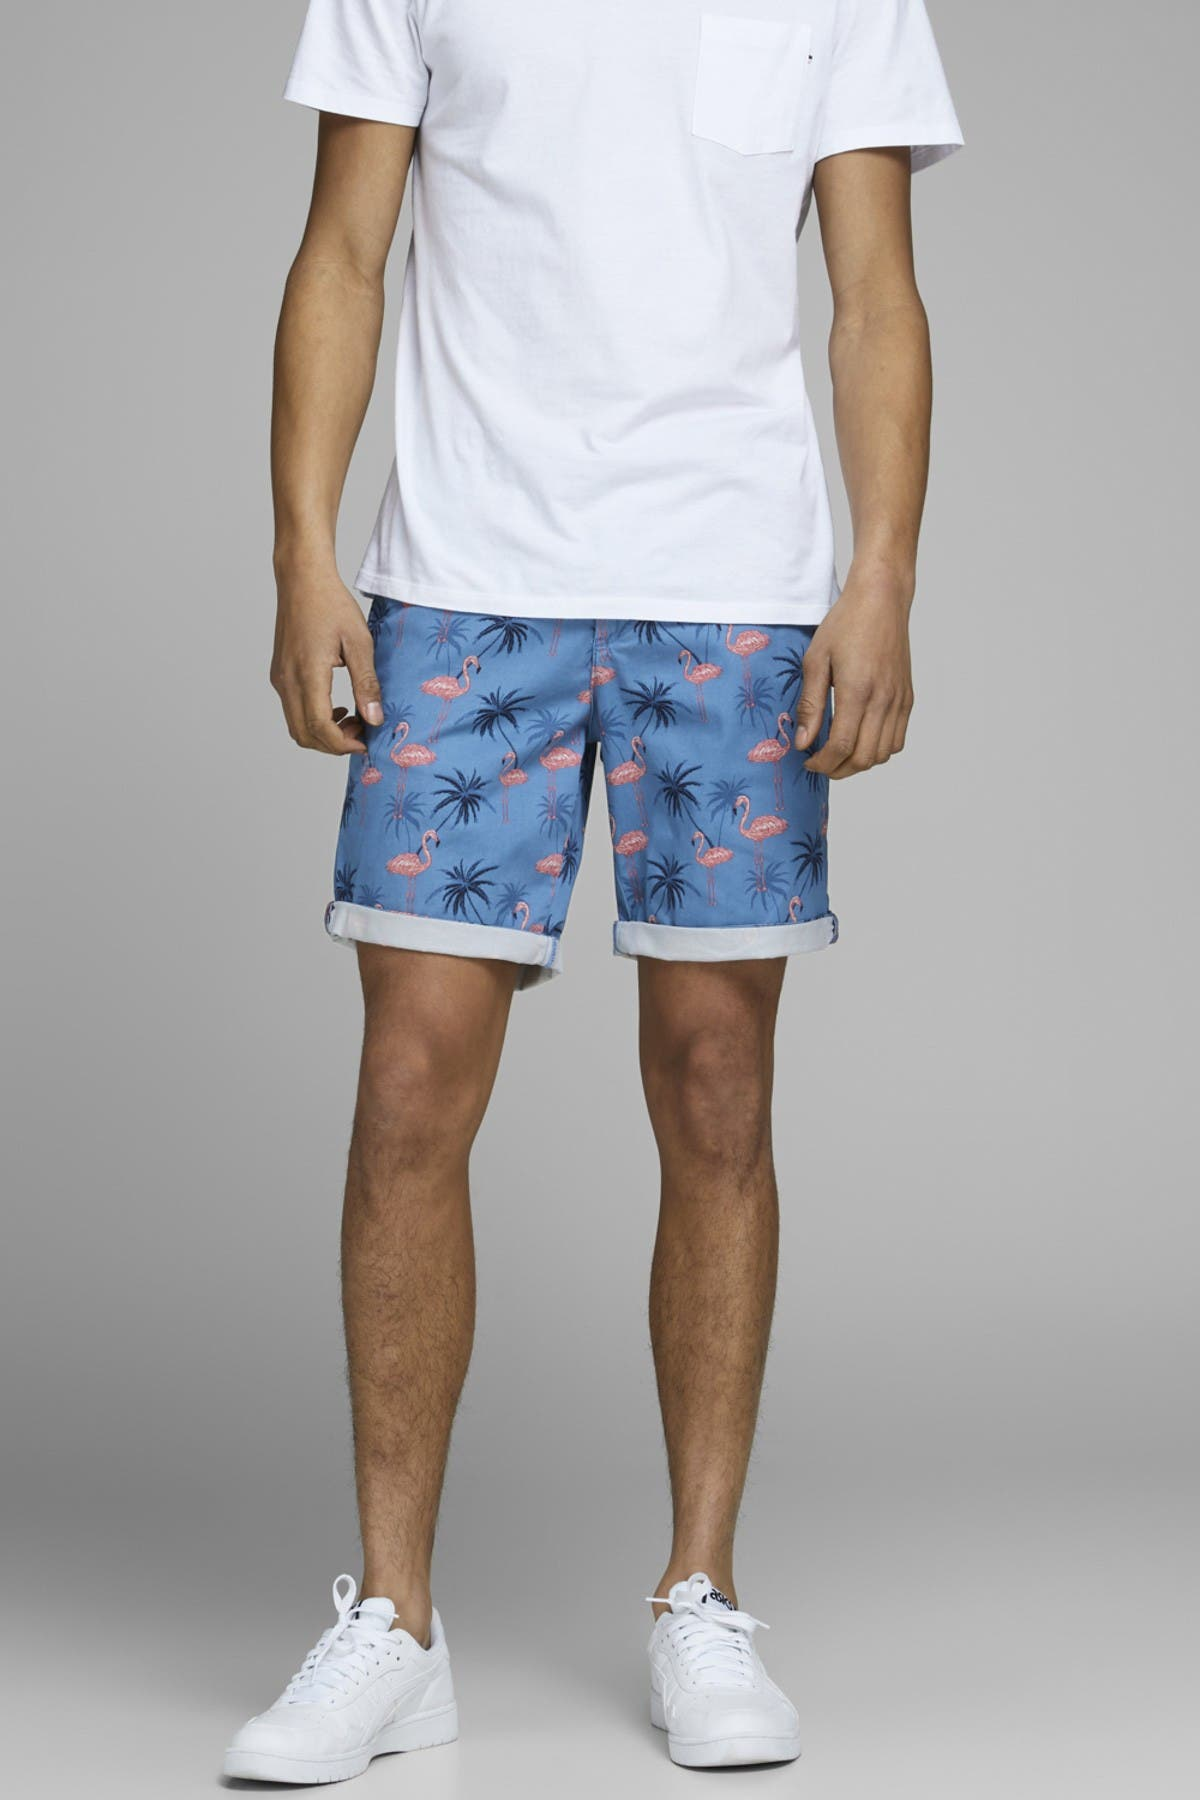 Image of JACK & JONES Bowie Cuffed Tropical Print Chino Shorts